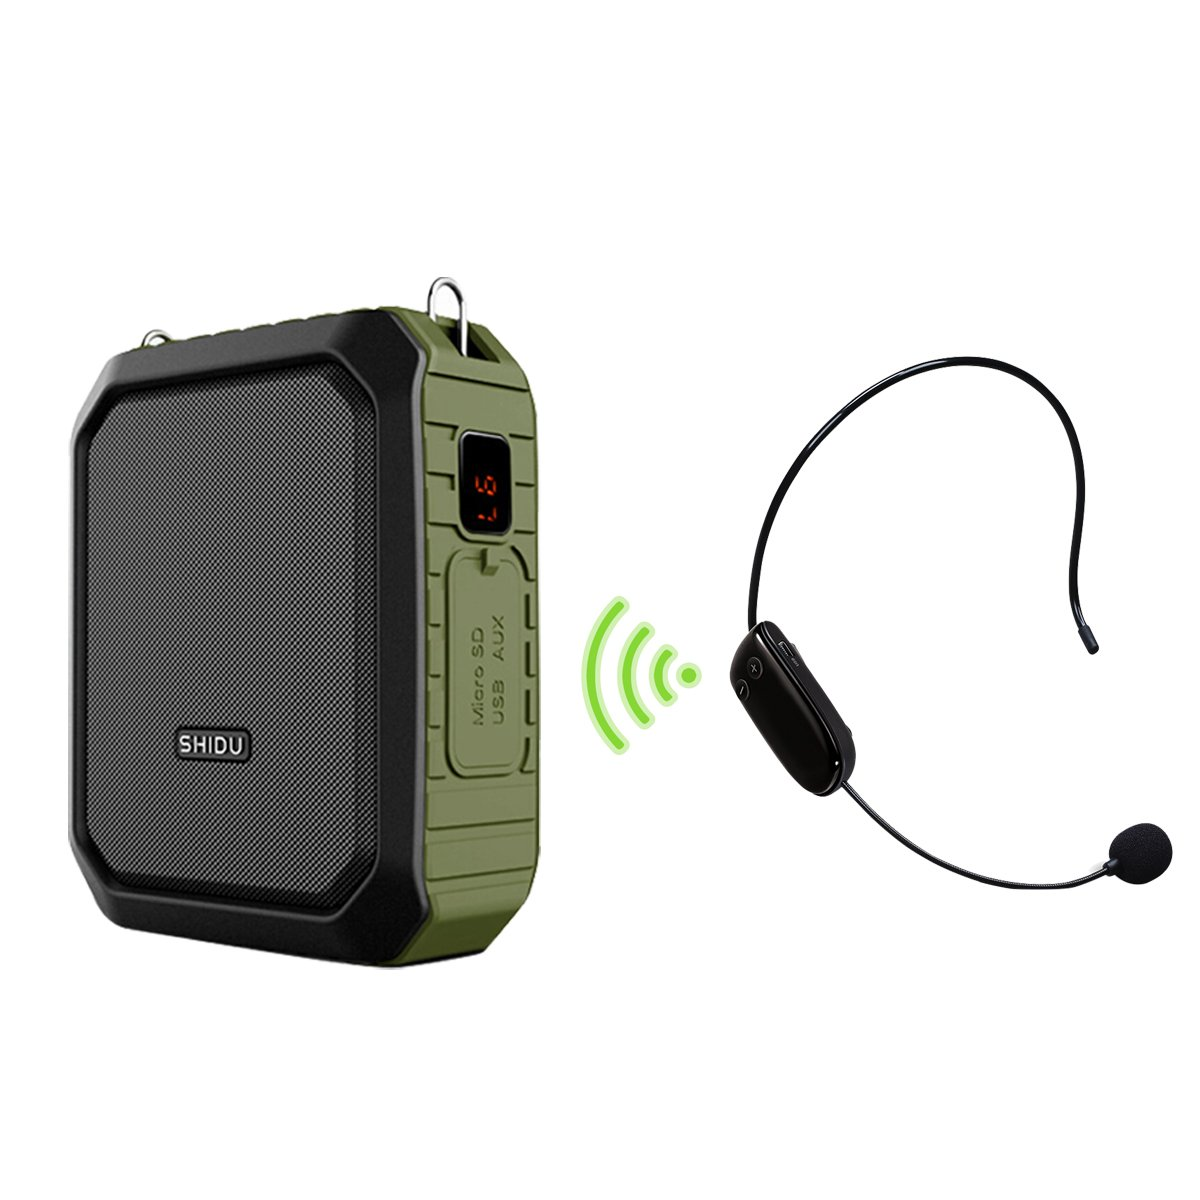 Wireless Voice Amplifier Bluetooth Teacher Microphone 18W Waterproof Portable Voice Amplifier Headset Mic Rechargeable Voice Enhancer Personal Microphone for Classroom Outdoors by HW HAOWORKS